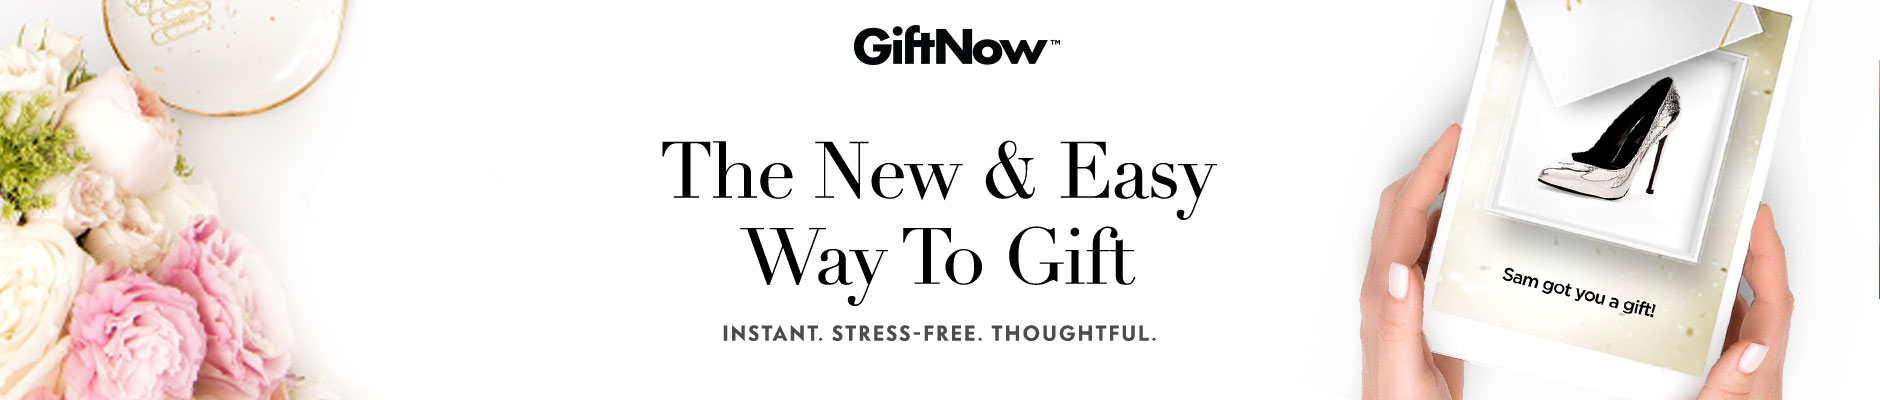 GiftNow: The New & Easy Way To Gift - Instant. Stress-Free. Thoughtful.